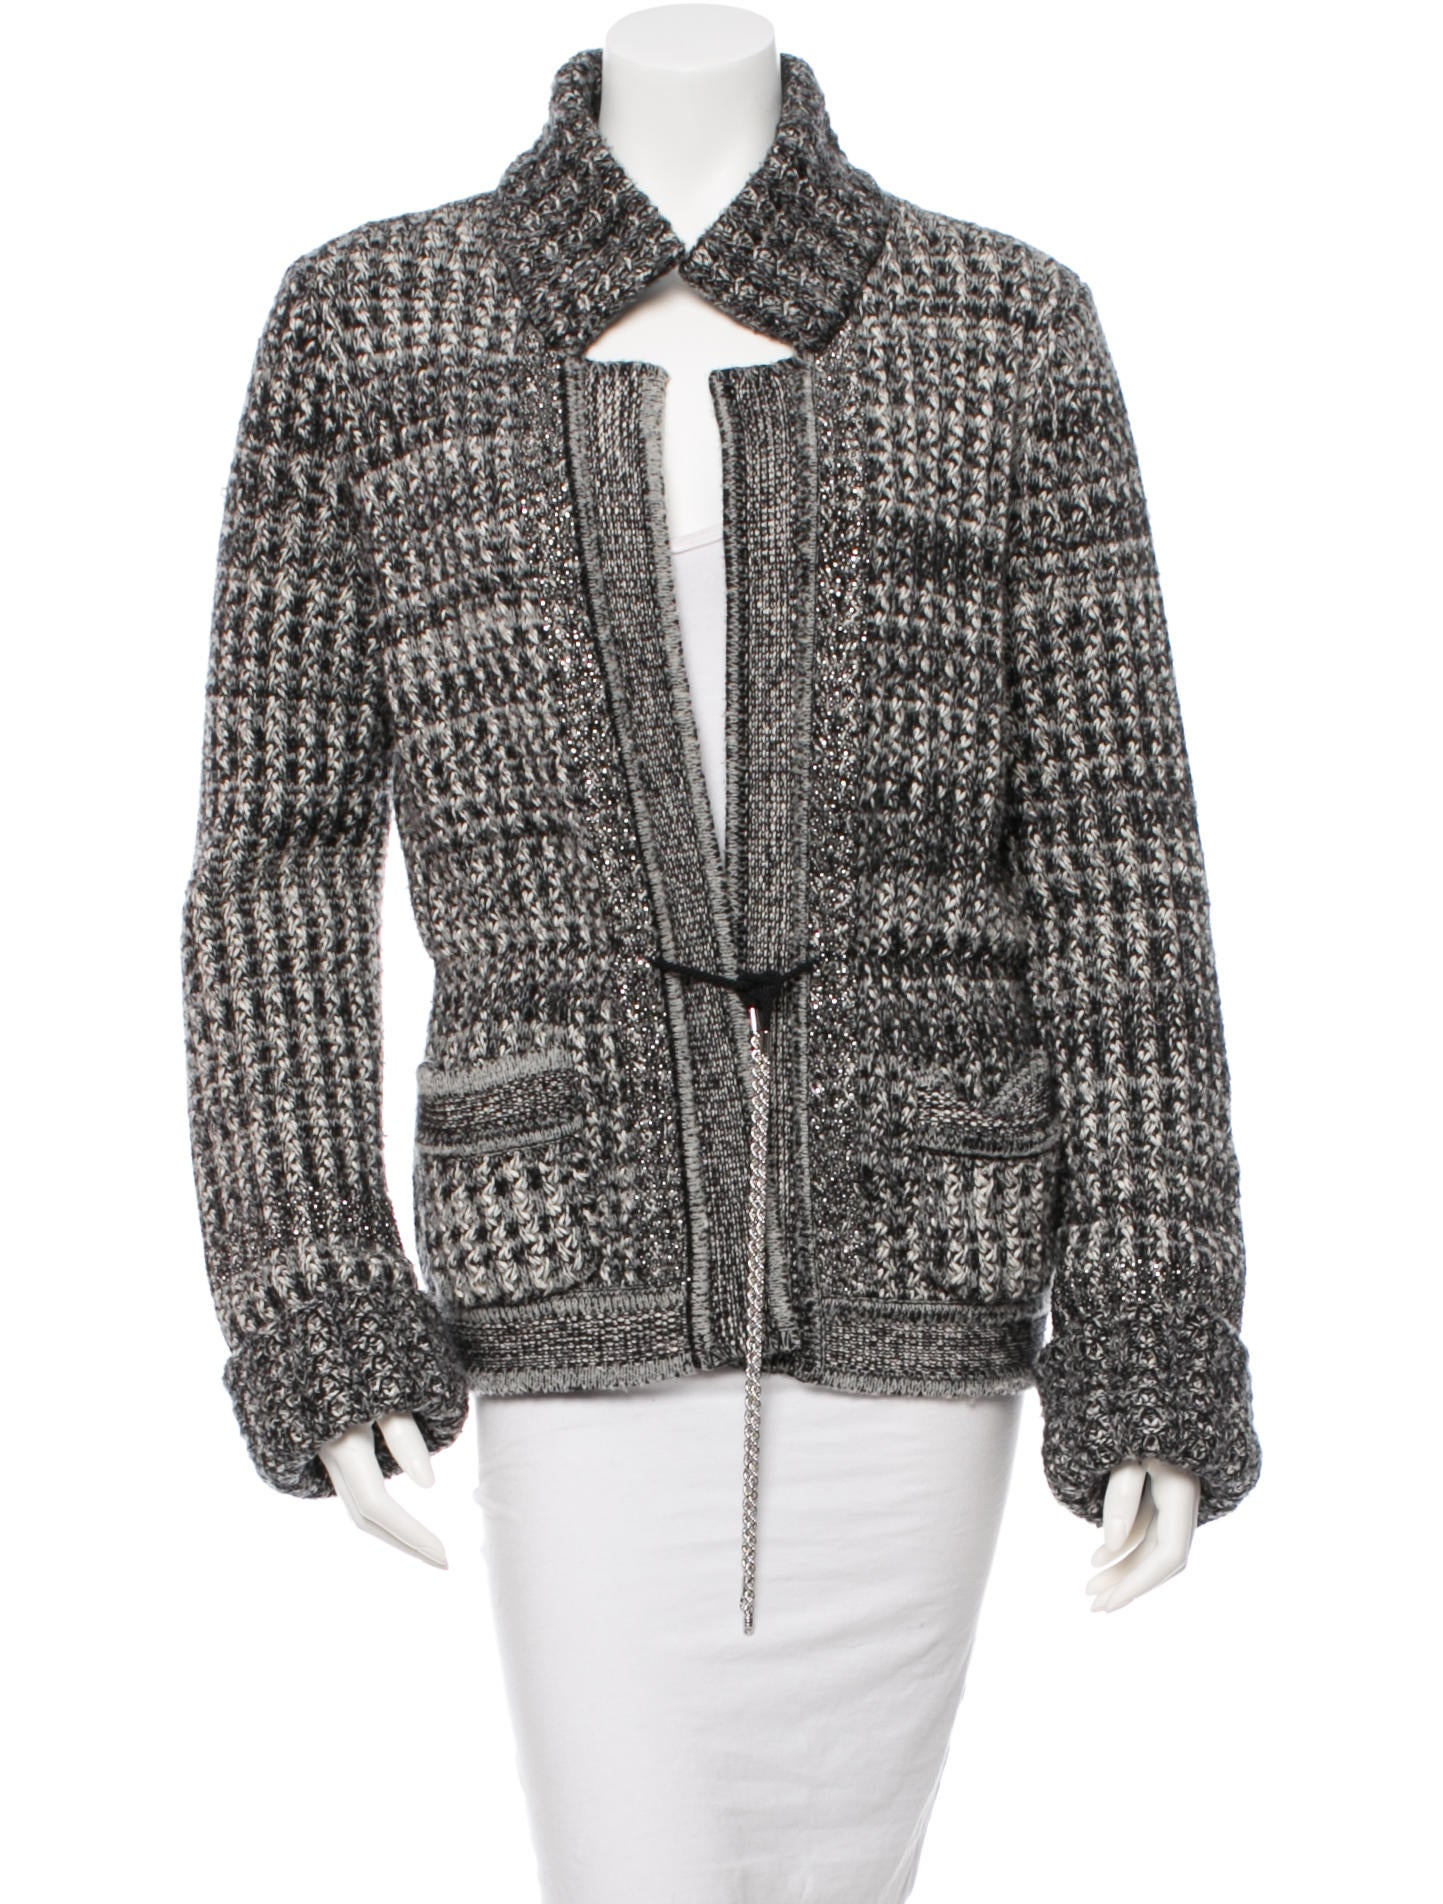 Chanel Embellished Knit Jacket - Clothing - CHA92806 The RealReal